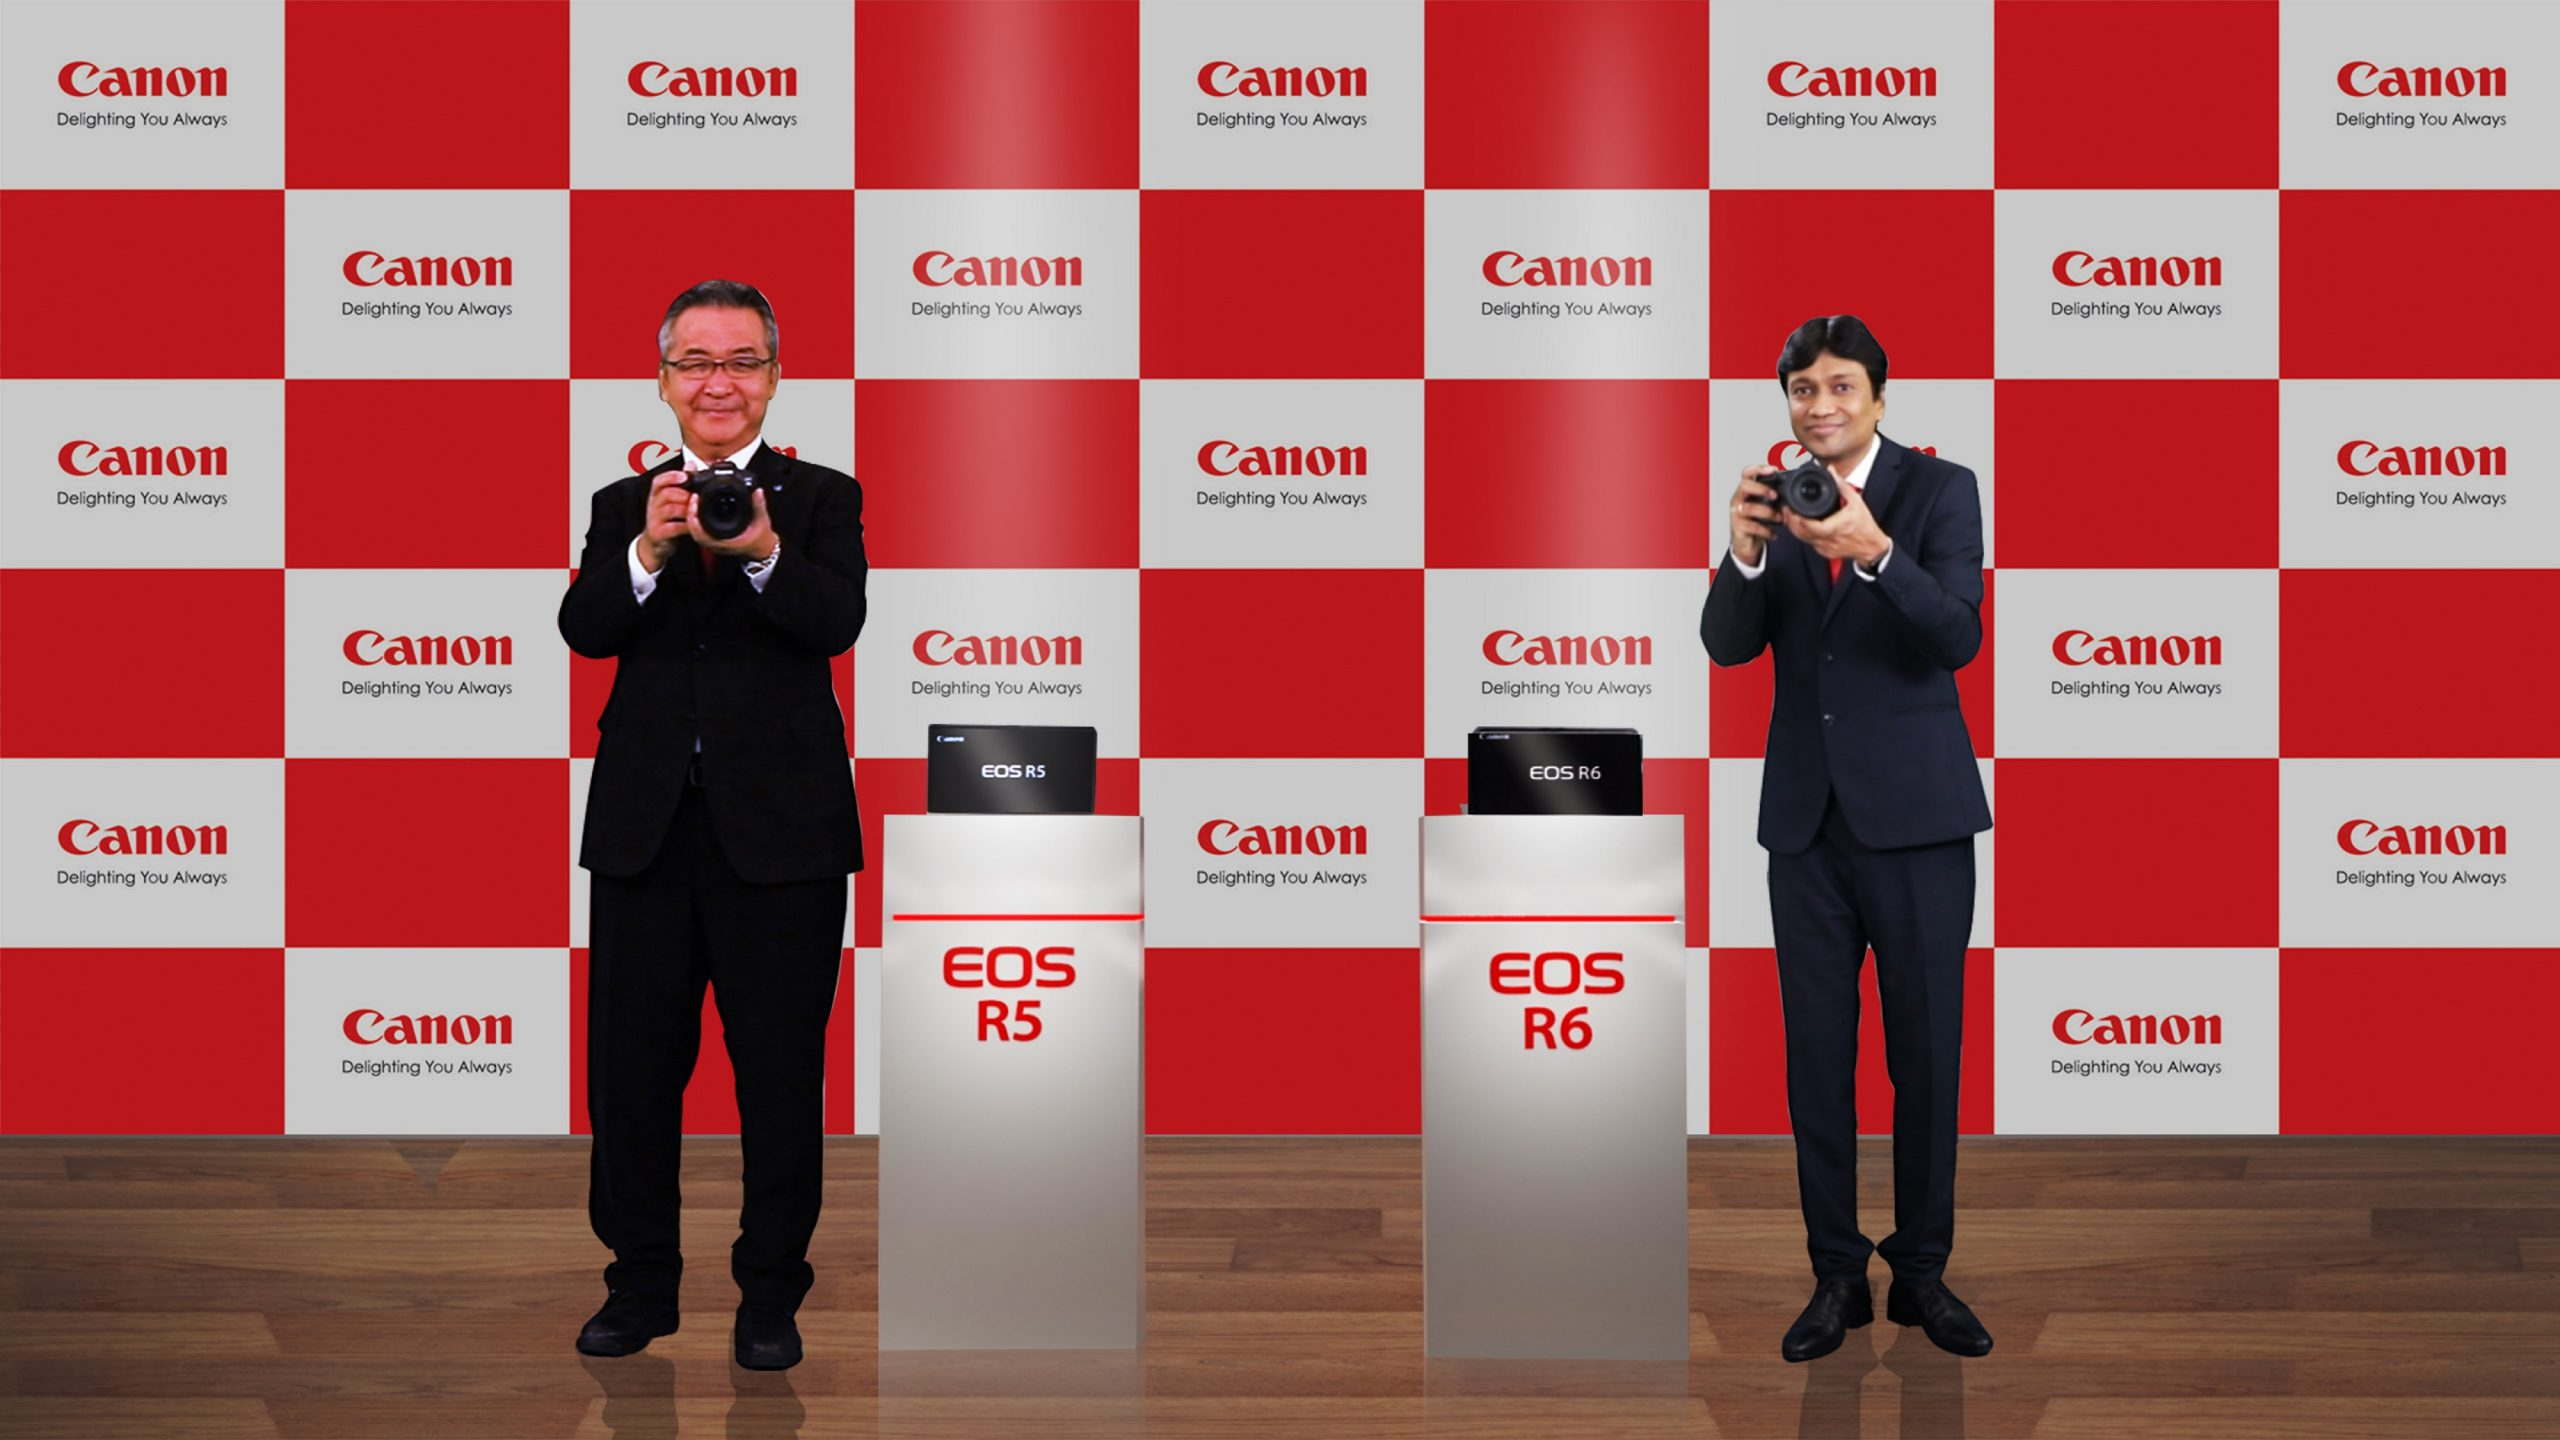 Product Unveiling Canon Launches EOS R5 and EOS R6 in India 09.07.2020 scaled